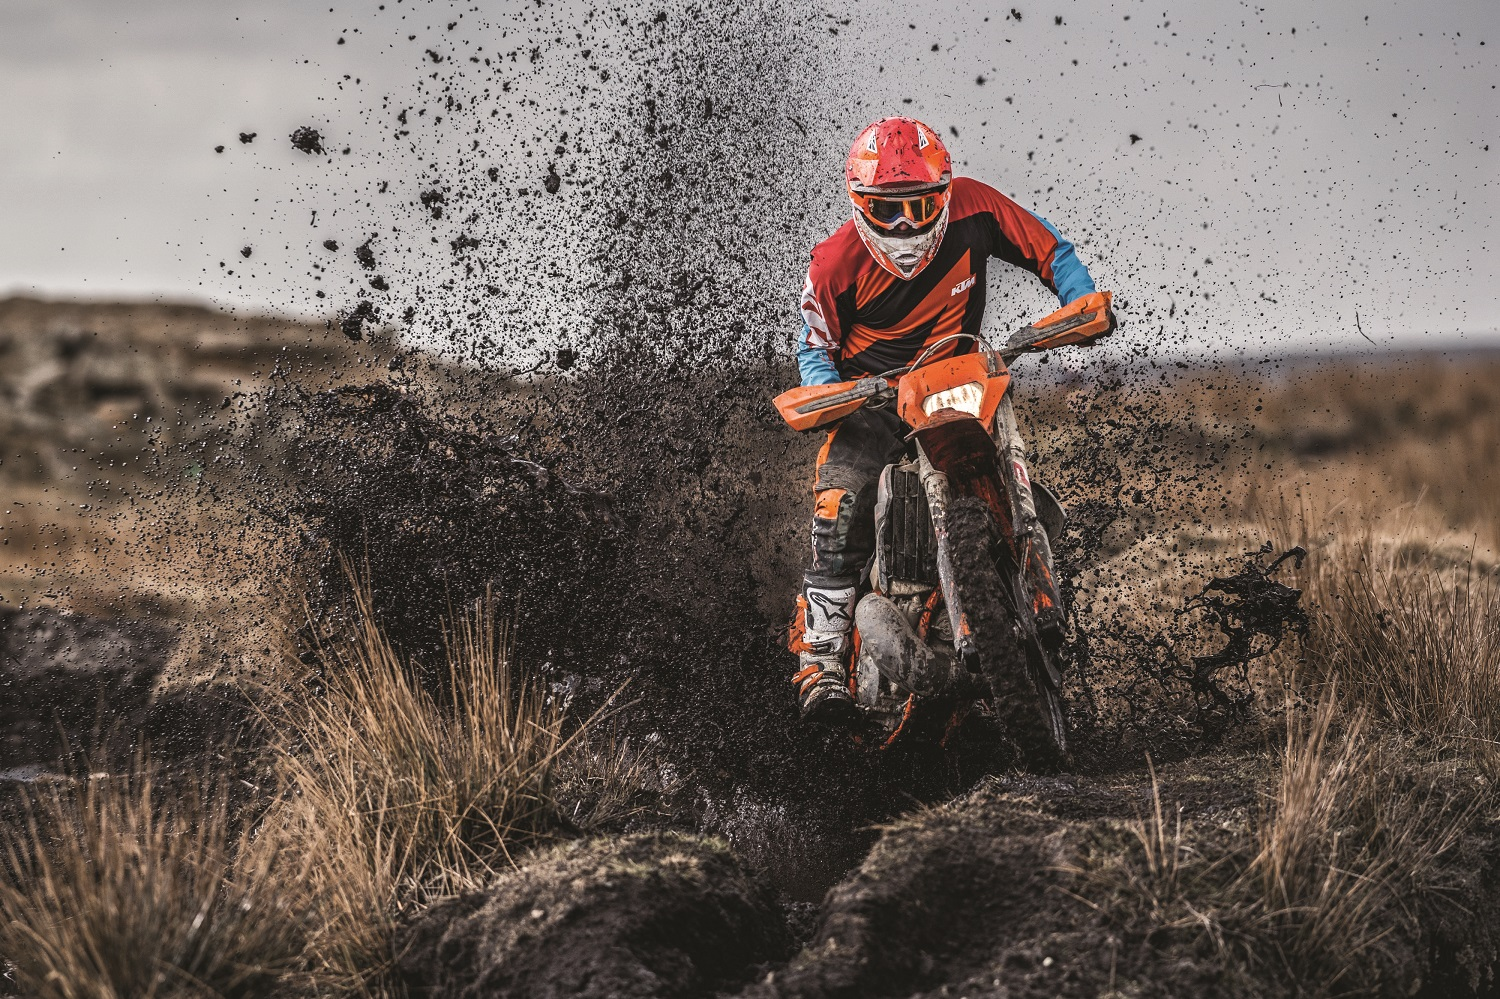 02_Action_KTM 250 EXC TPI MY2019